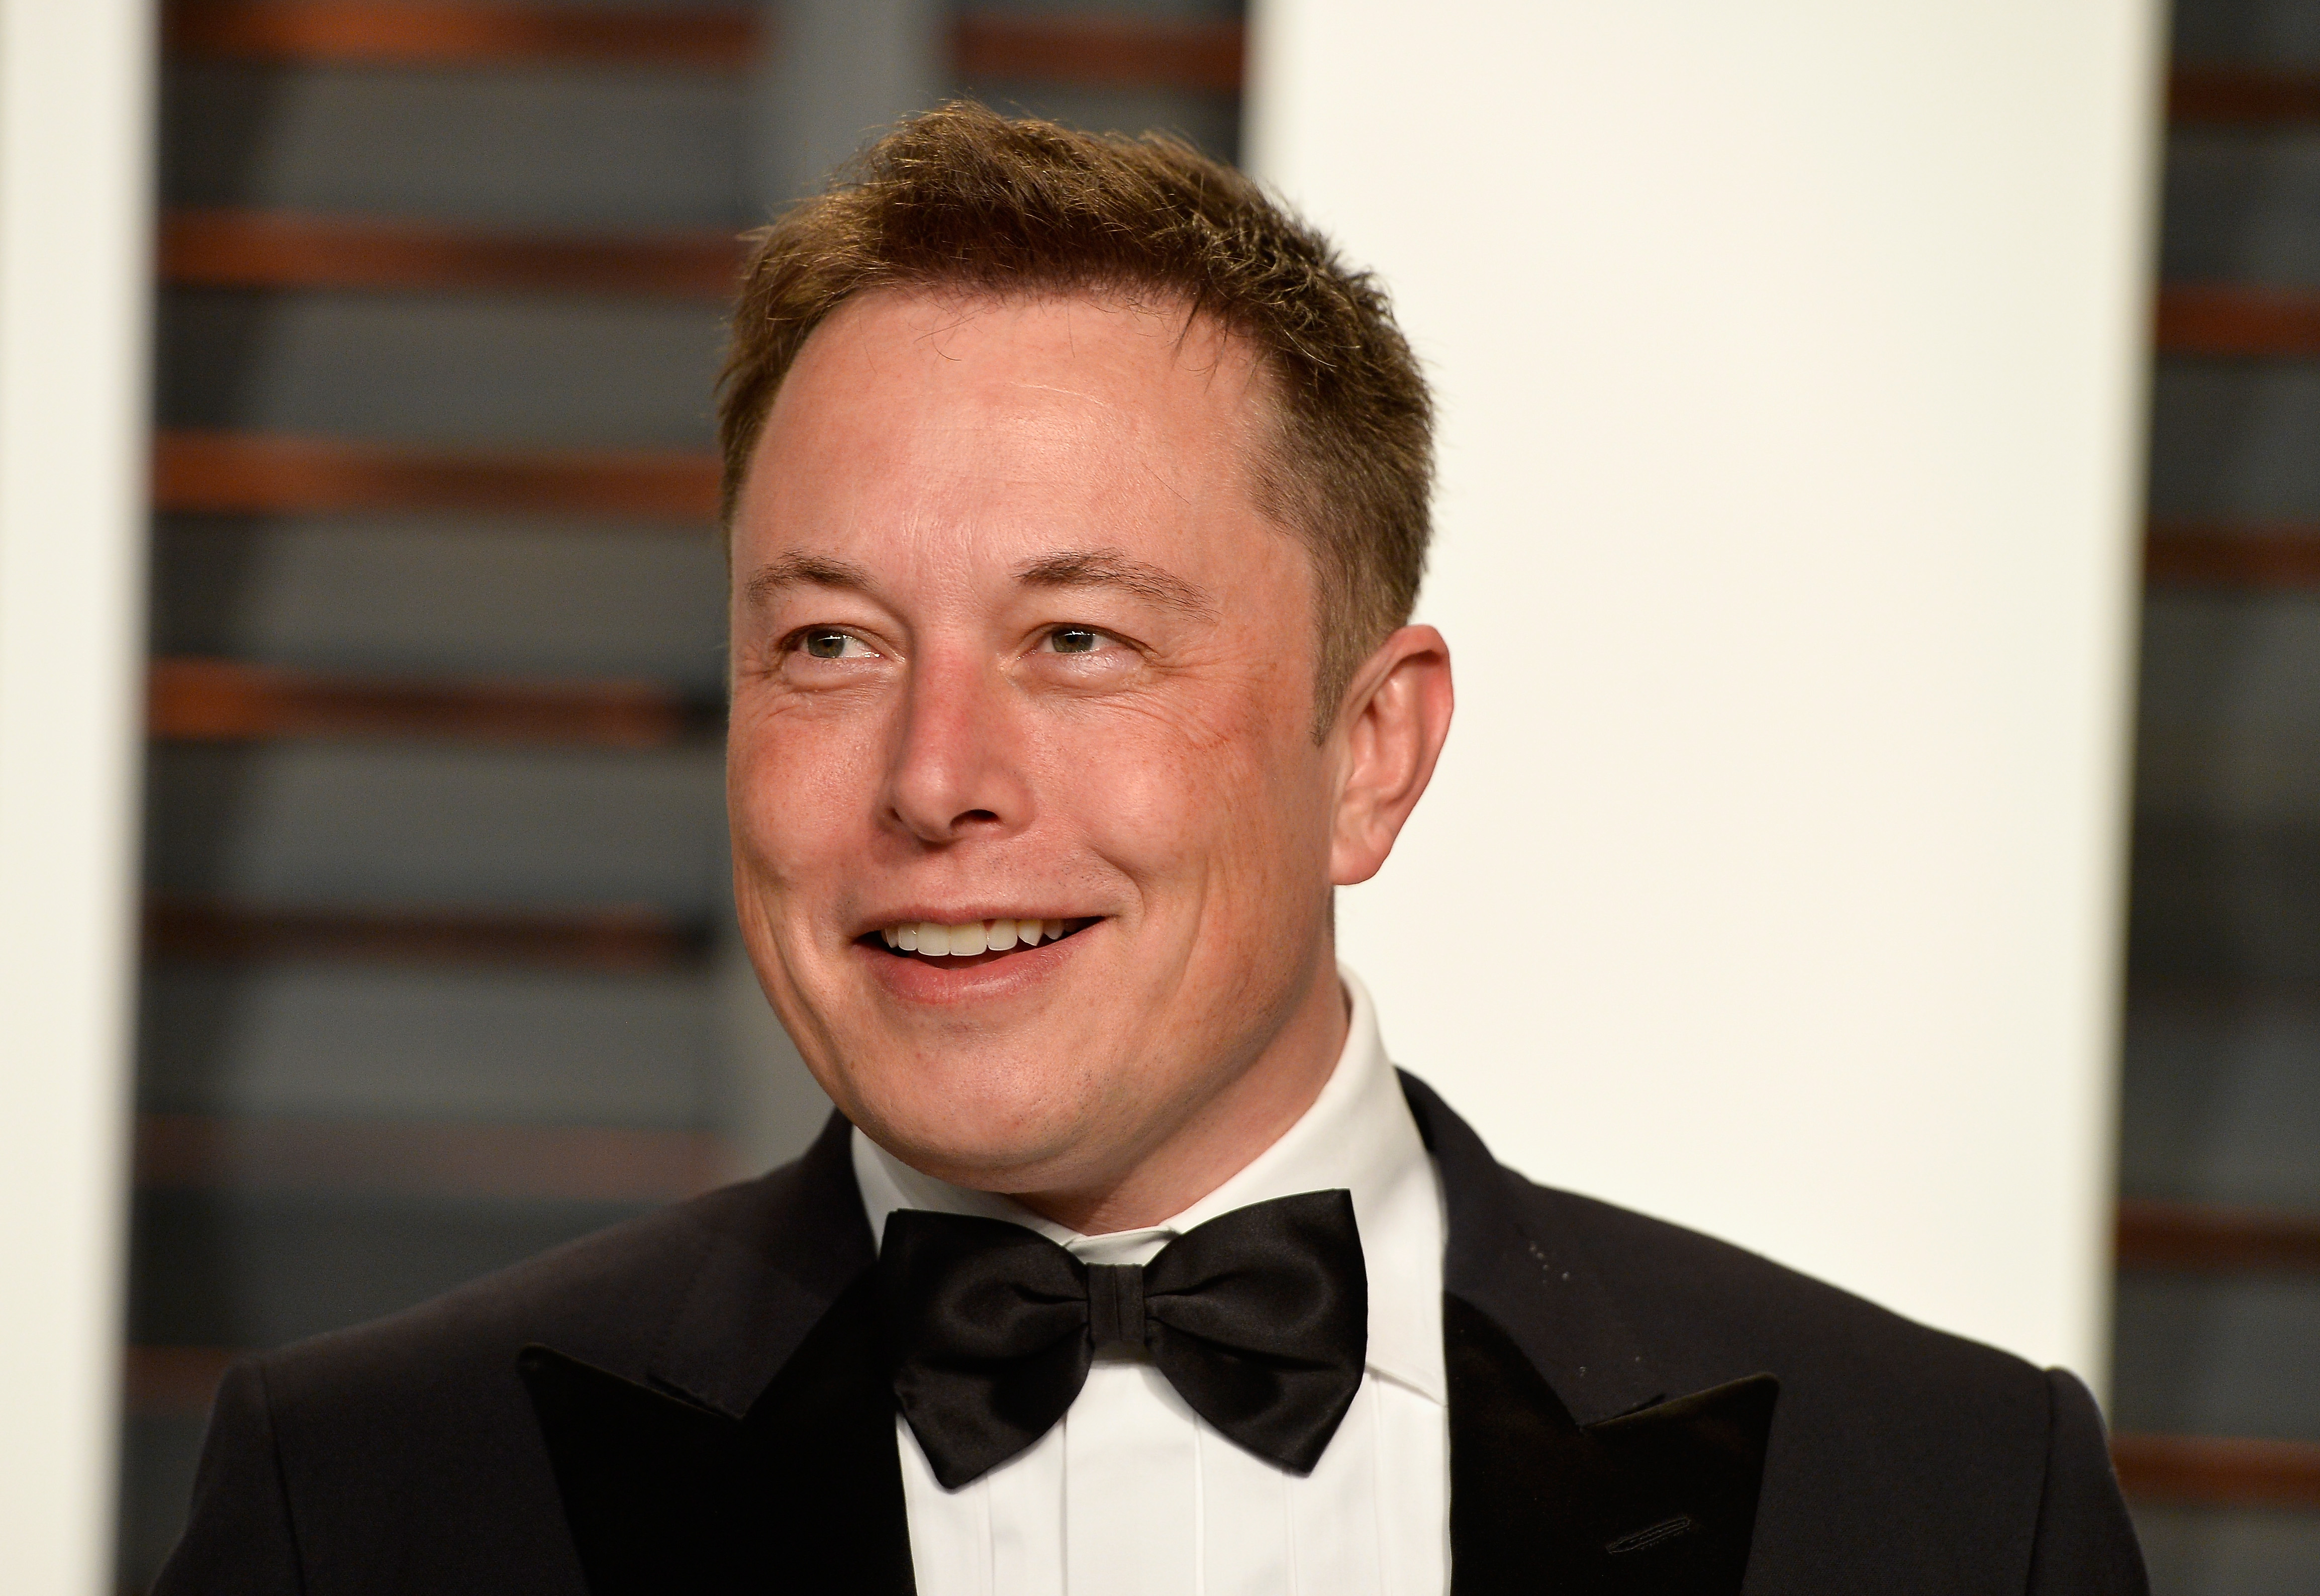 elon musk rises in world s wealthiest rankings fortune https fortune com 2020 08 18 elon musk worlds fourth richest person